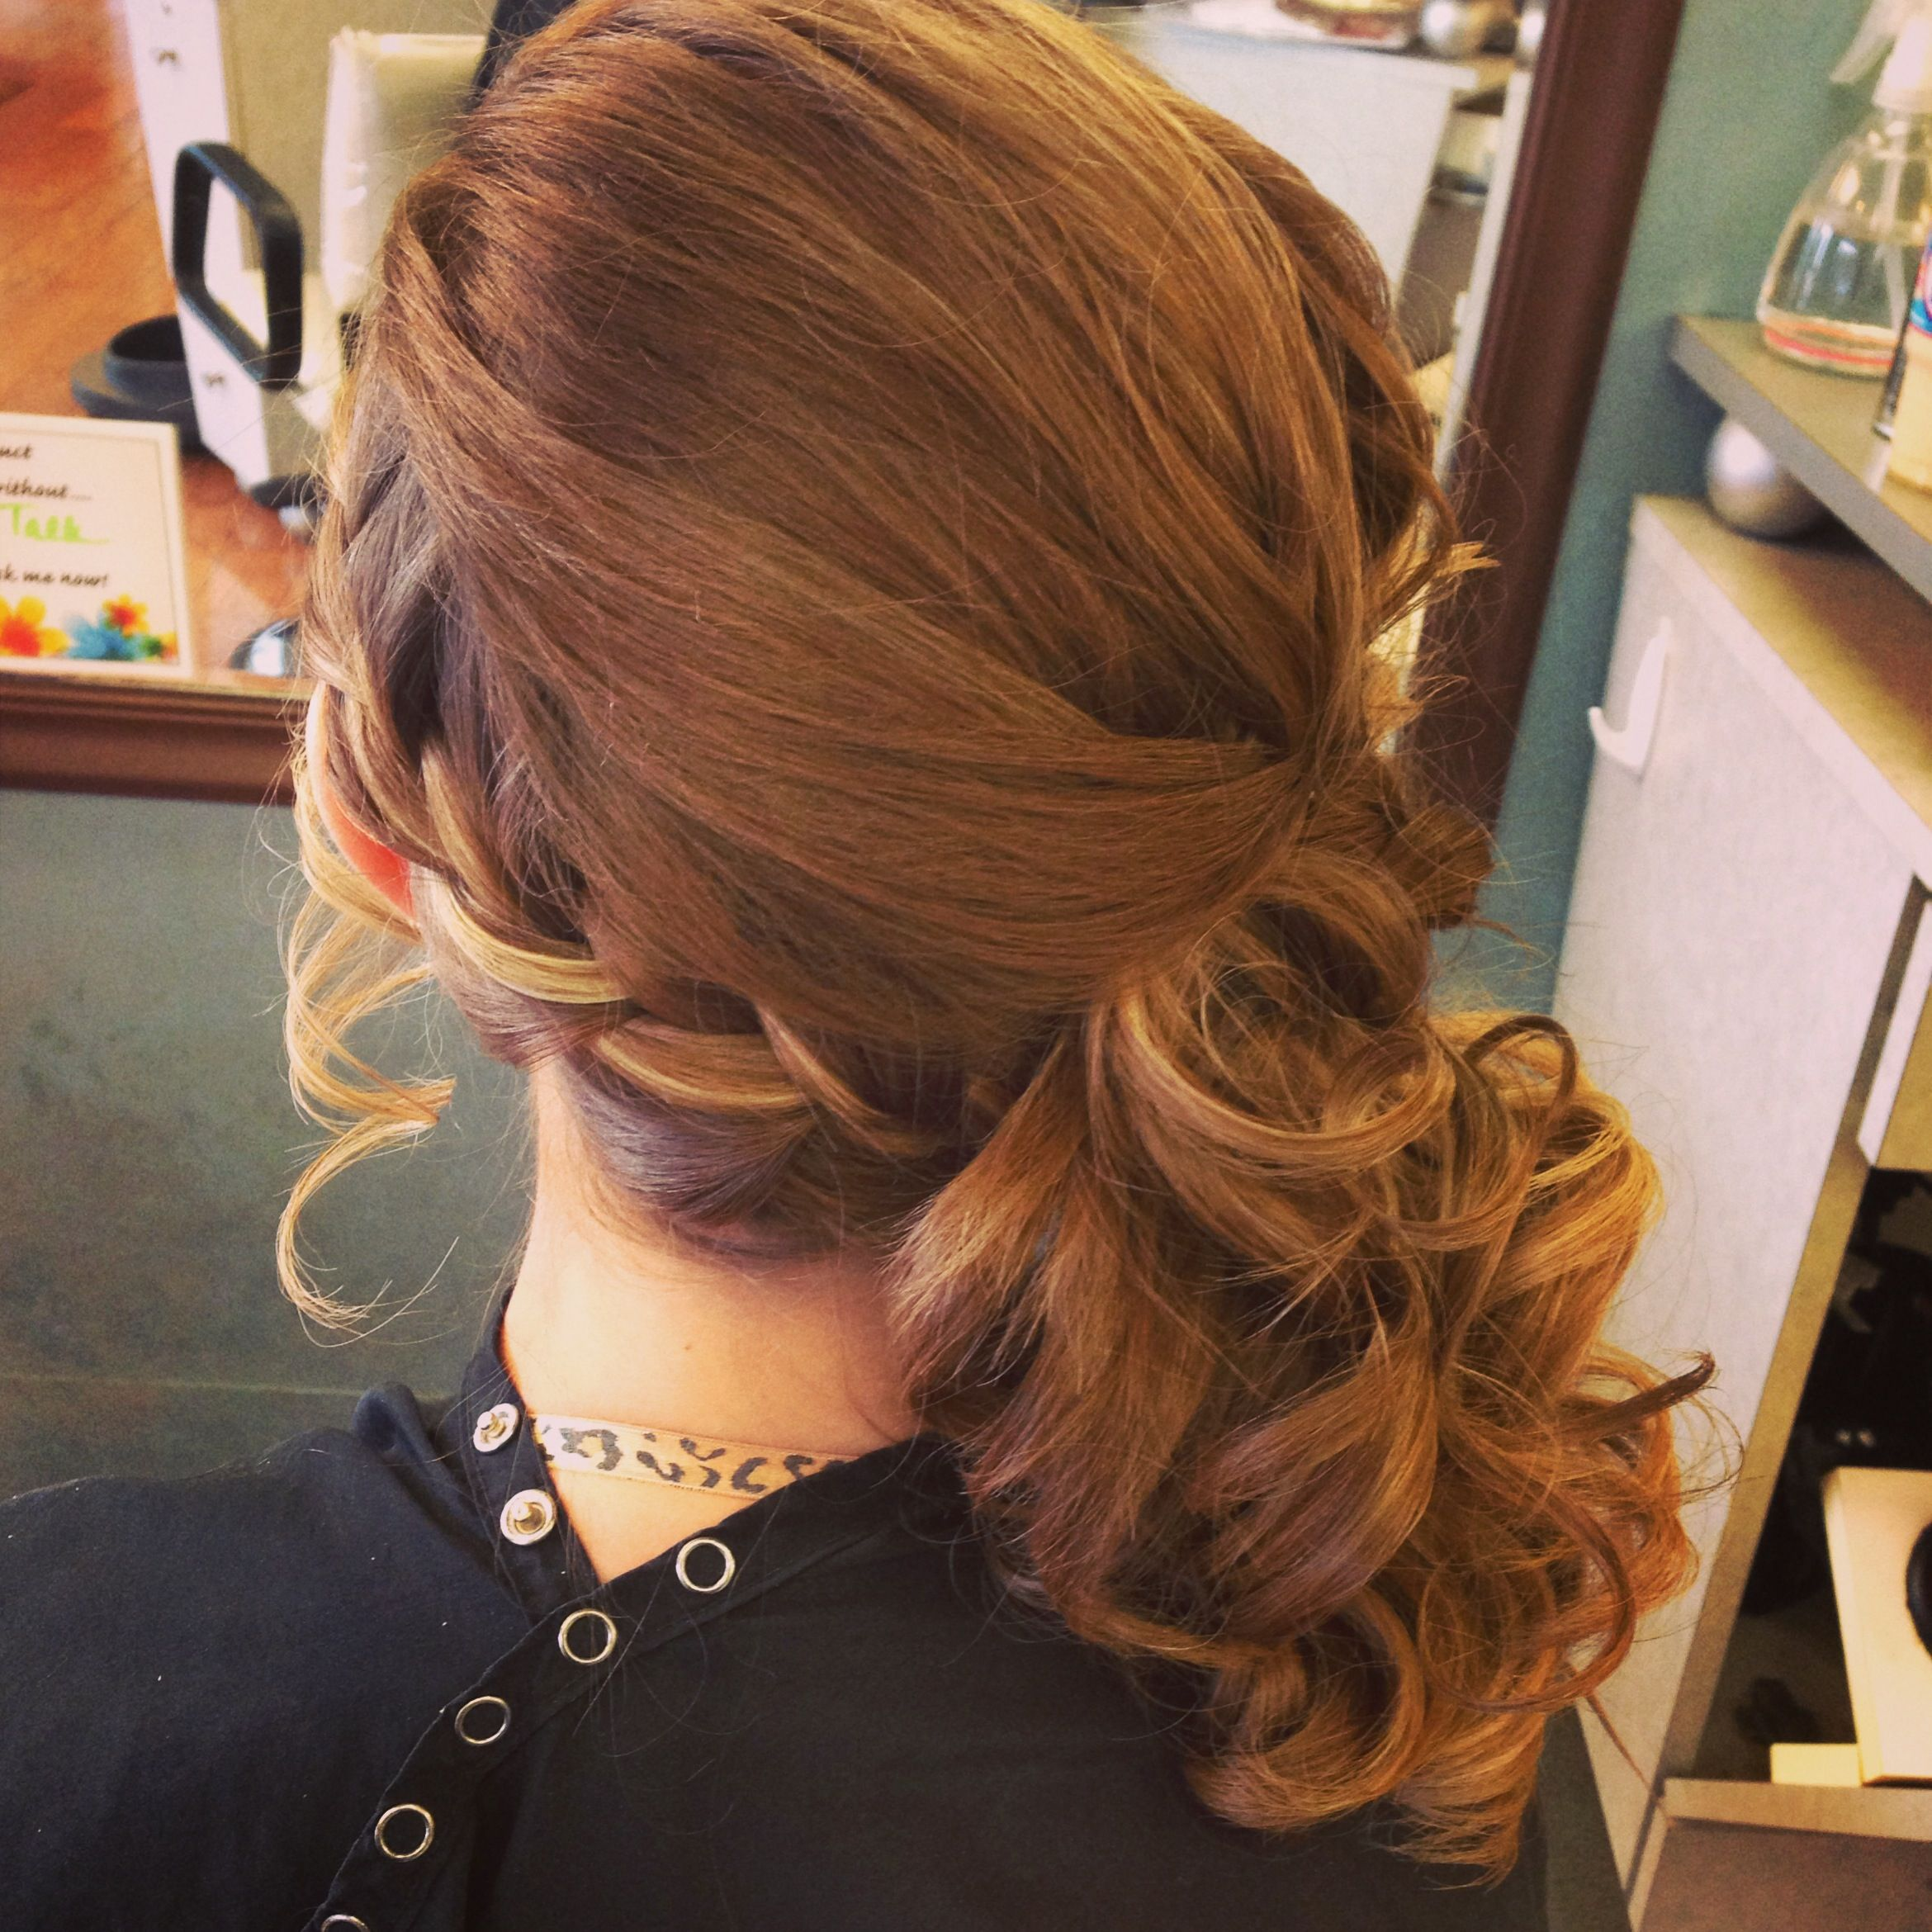 Side braid with curls | Beauty | Pinterest